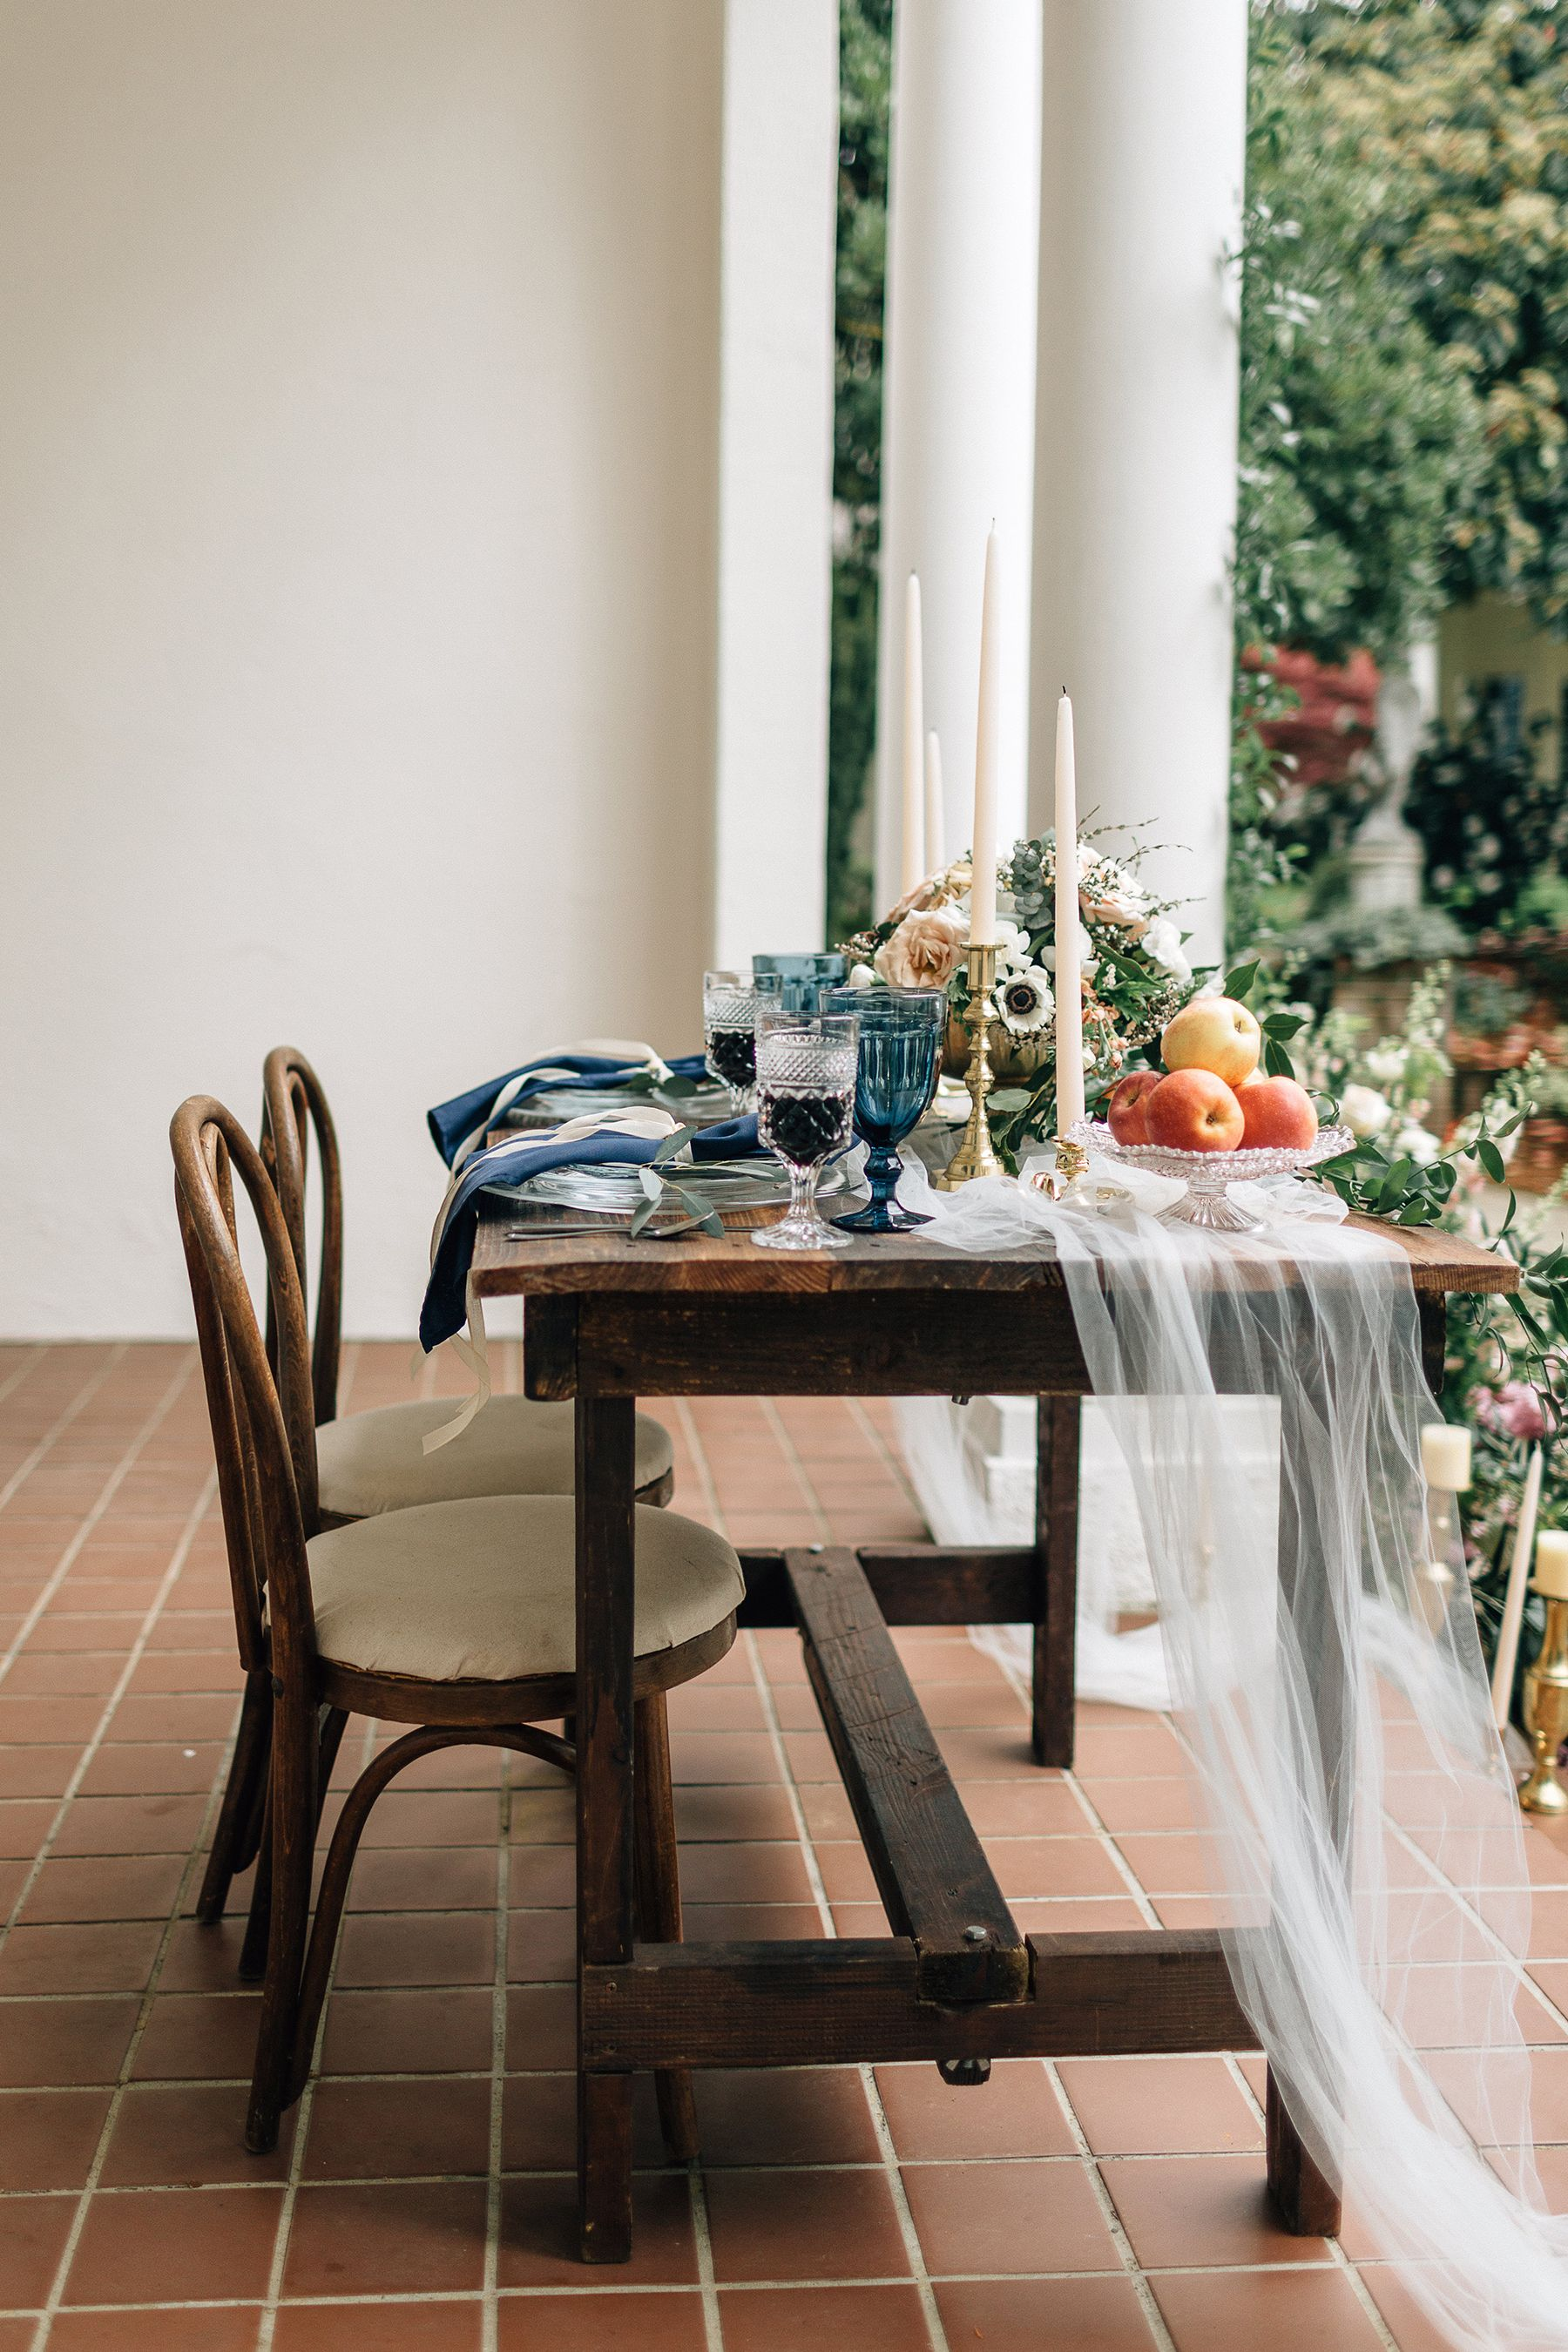 Long wood wedding tablescape with low wedding centerpieces, tulle wedding runner and candles | Romantic Garden Wedding Inspiration in Portland - Amanda Meg Photography #table #tablesetting #tablescape #tabledecor #centerpieceideas #weddingdecor #weddingdecorations